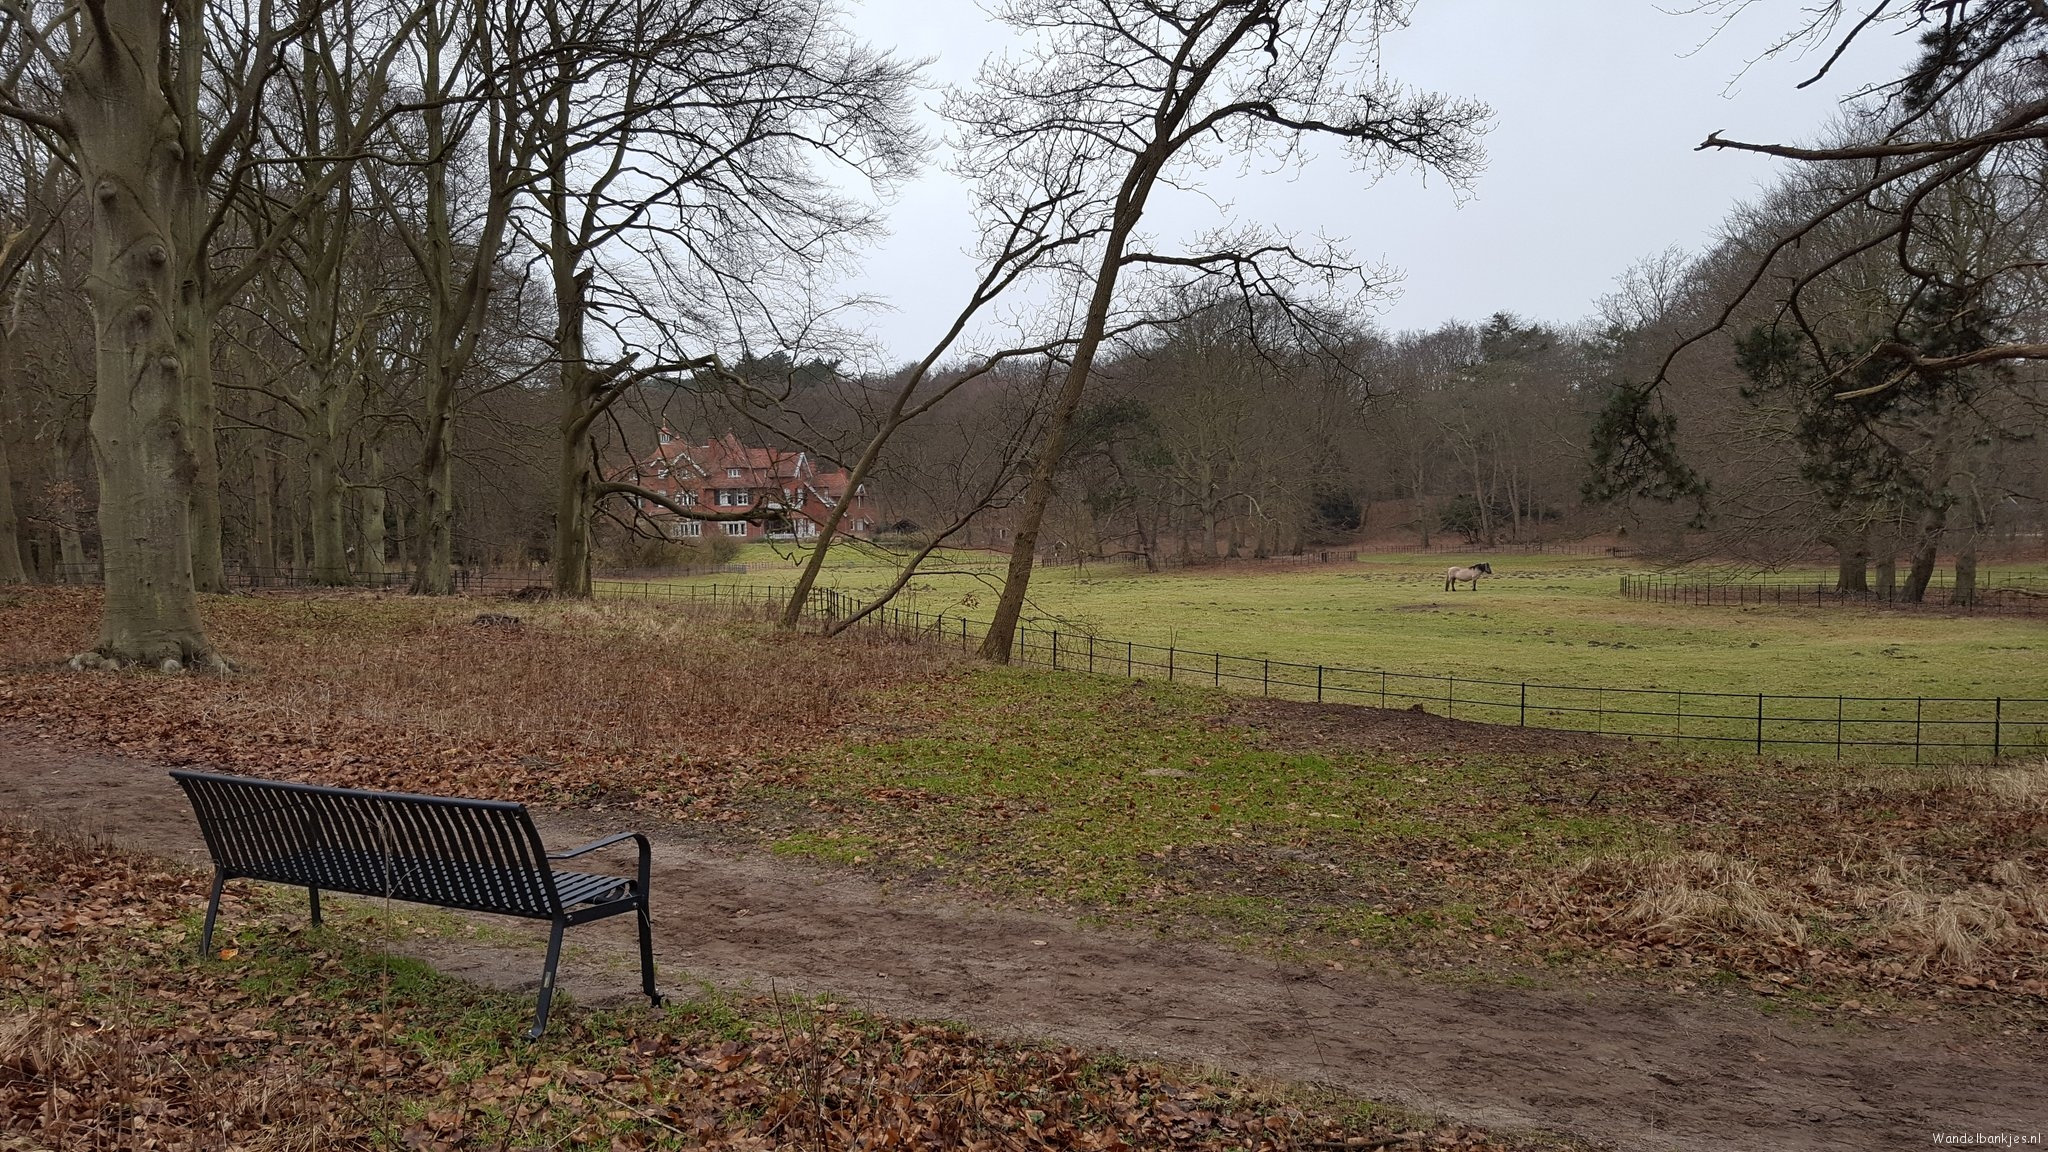 rt-lavooi-koningshof-overveen-walking-benches-https-t-co-pfieatgrdt